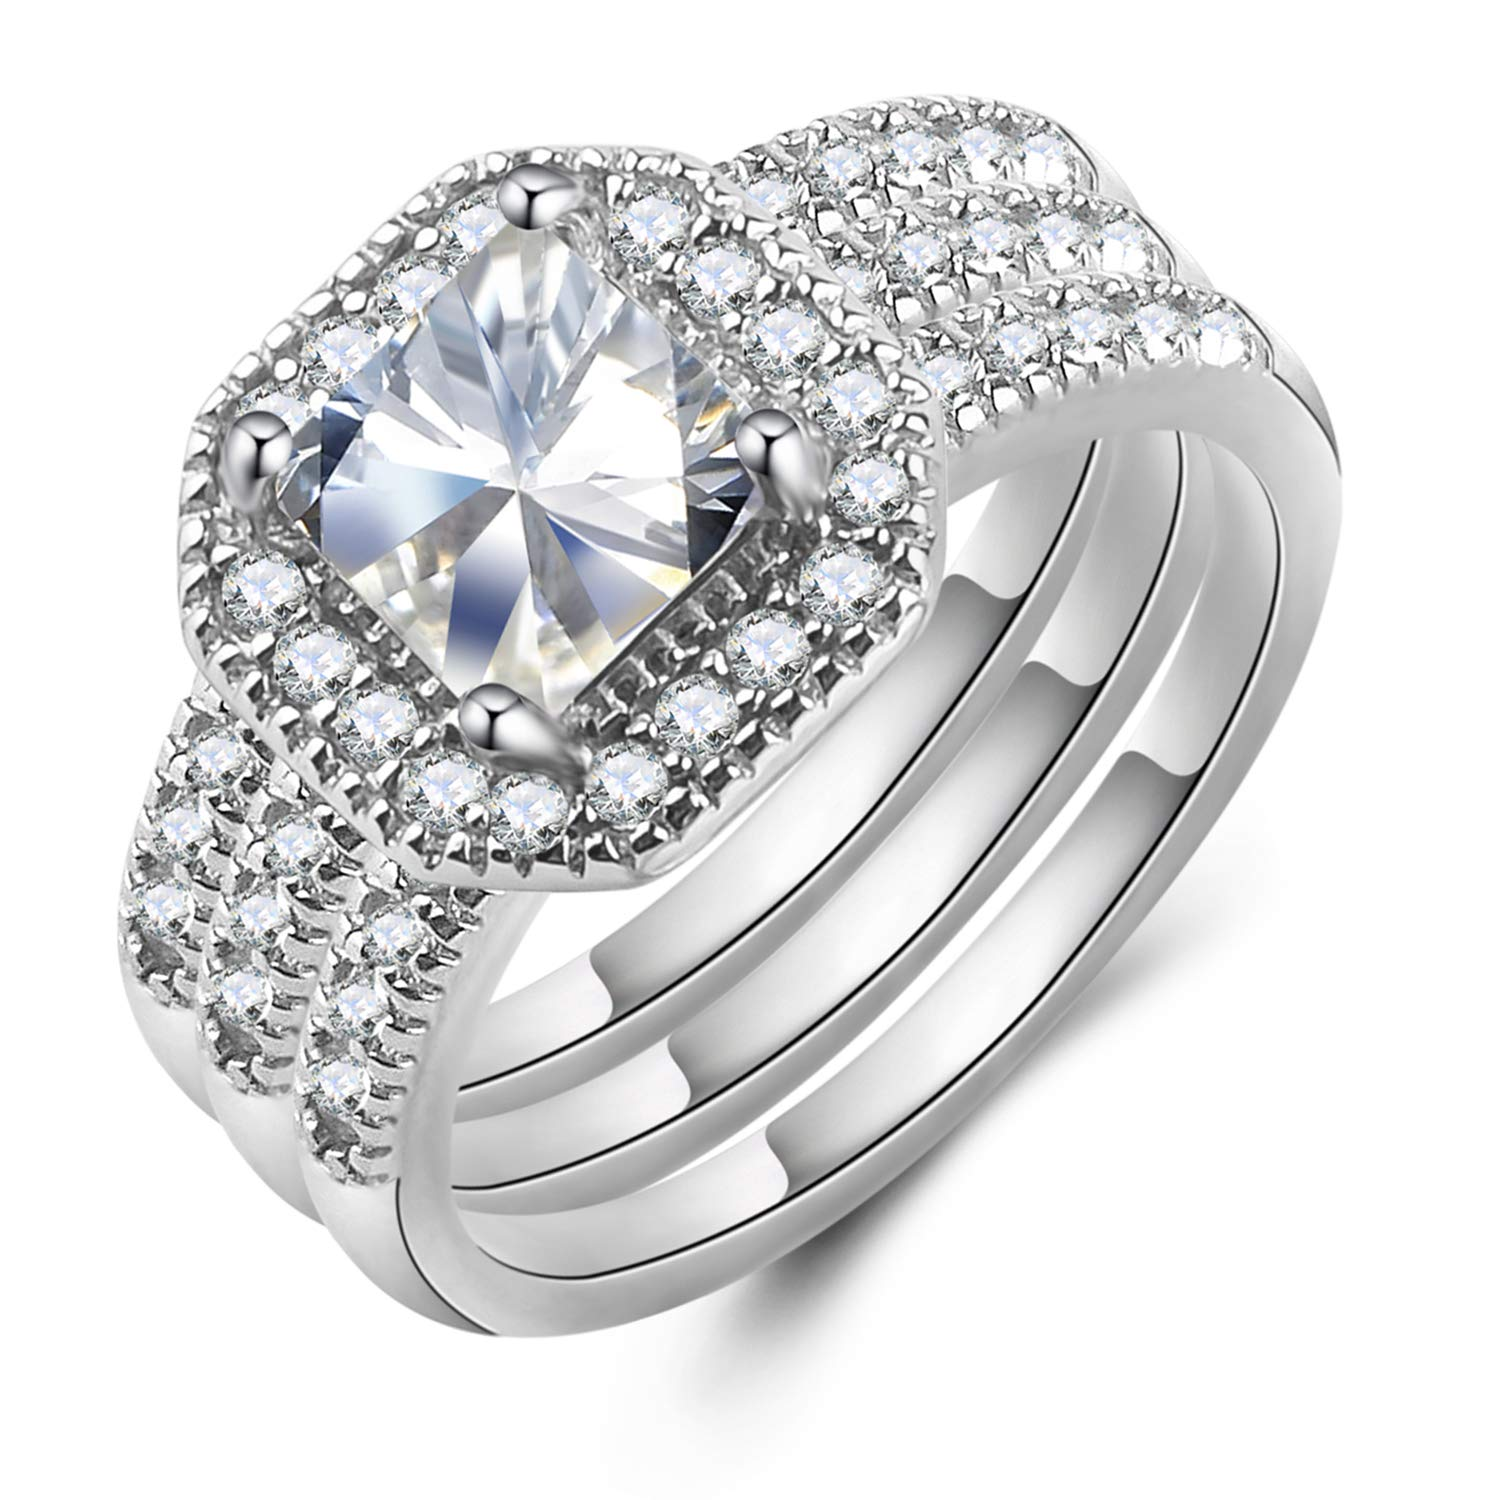 Mars wings Sterling Silver CZ Wedding Engagement Gifts for Women Rings|3 Pcs Ring Band Set